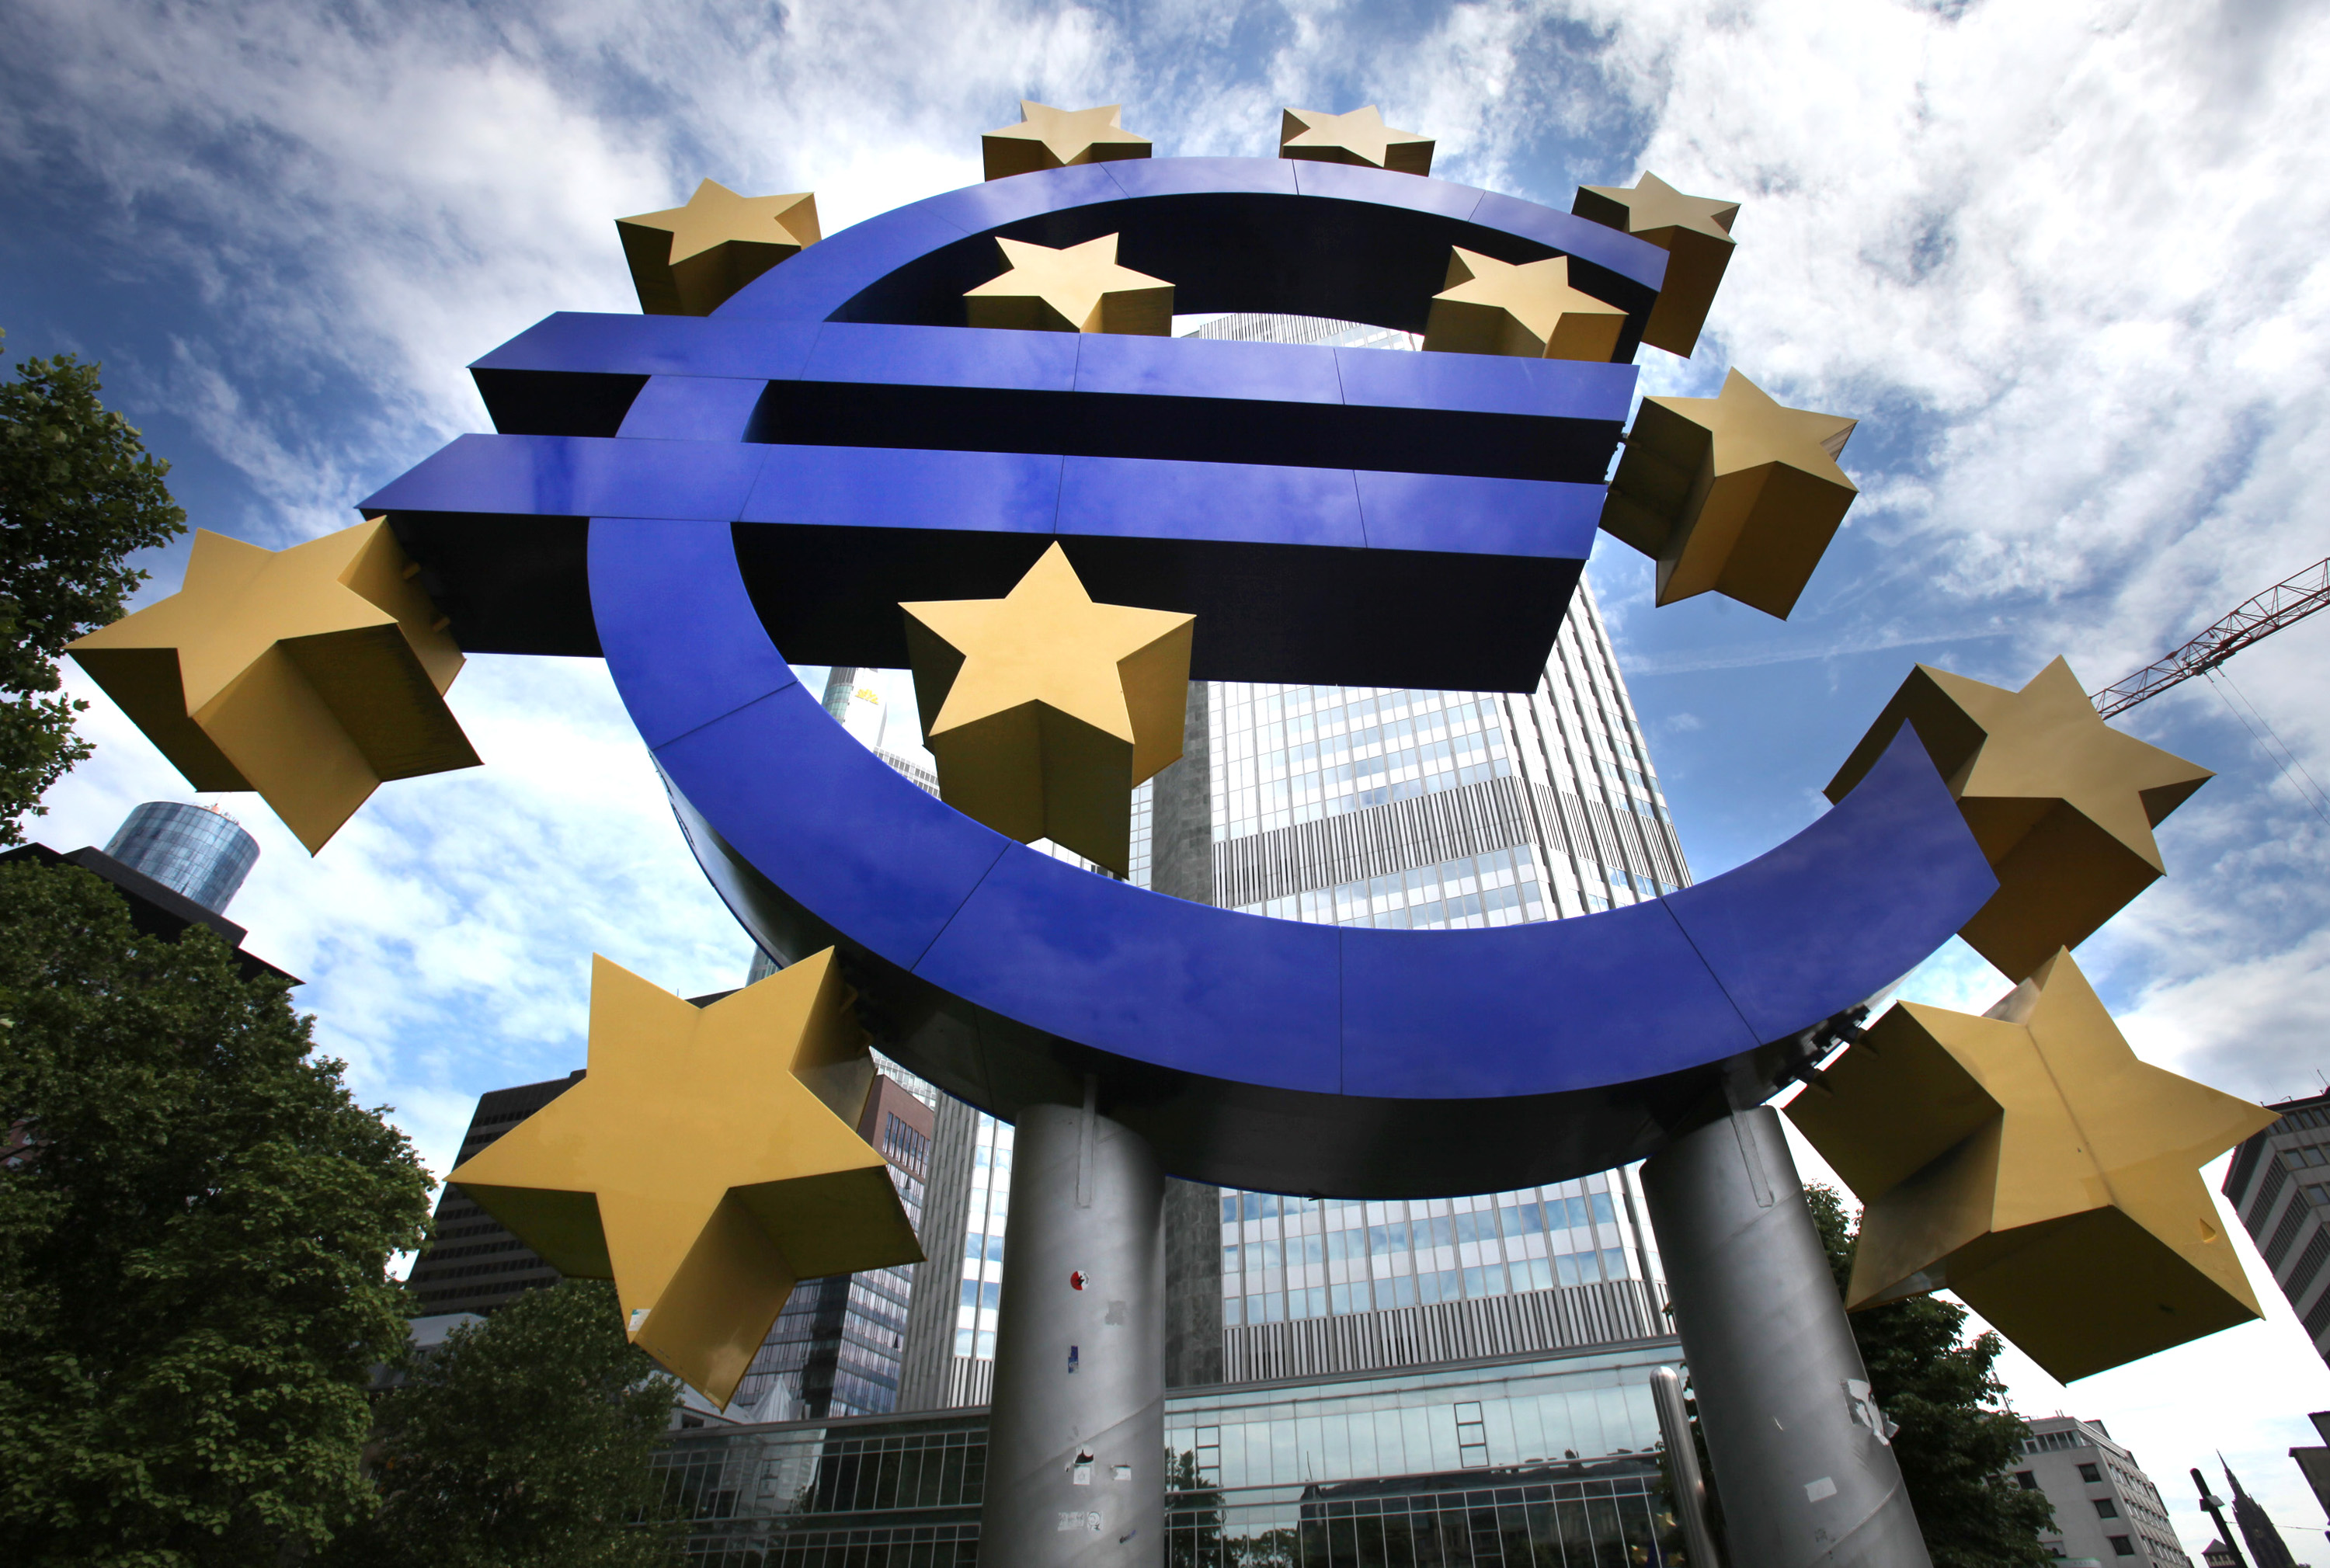 ecb-faces-deep-concern-over-health-of-banks-2010-07-08_l-1